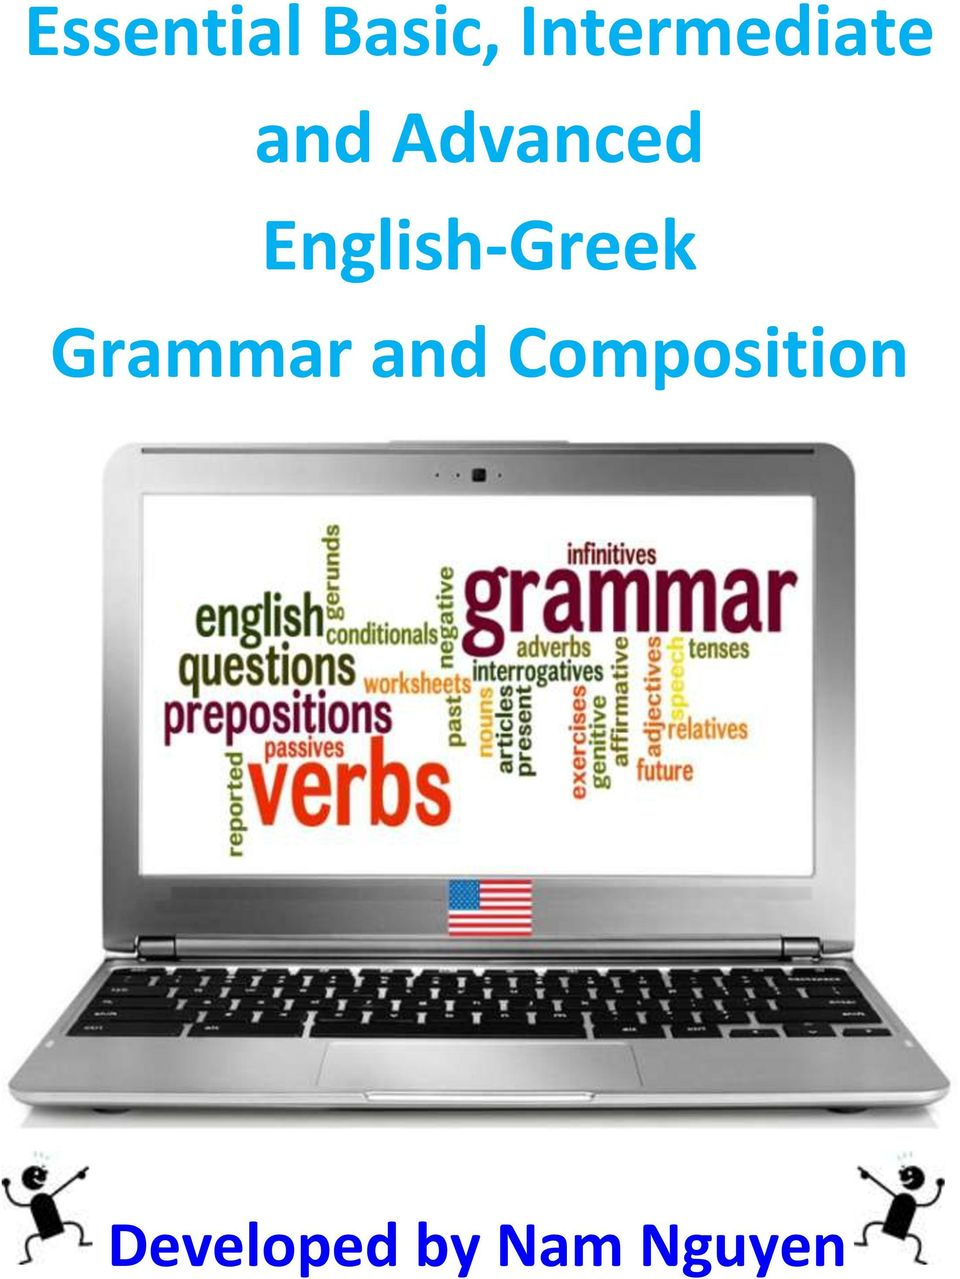 English-Greek Grammar and